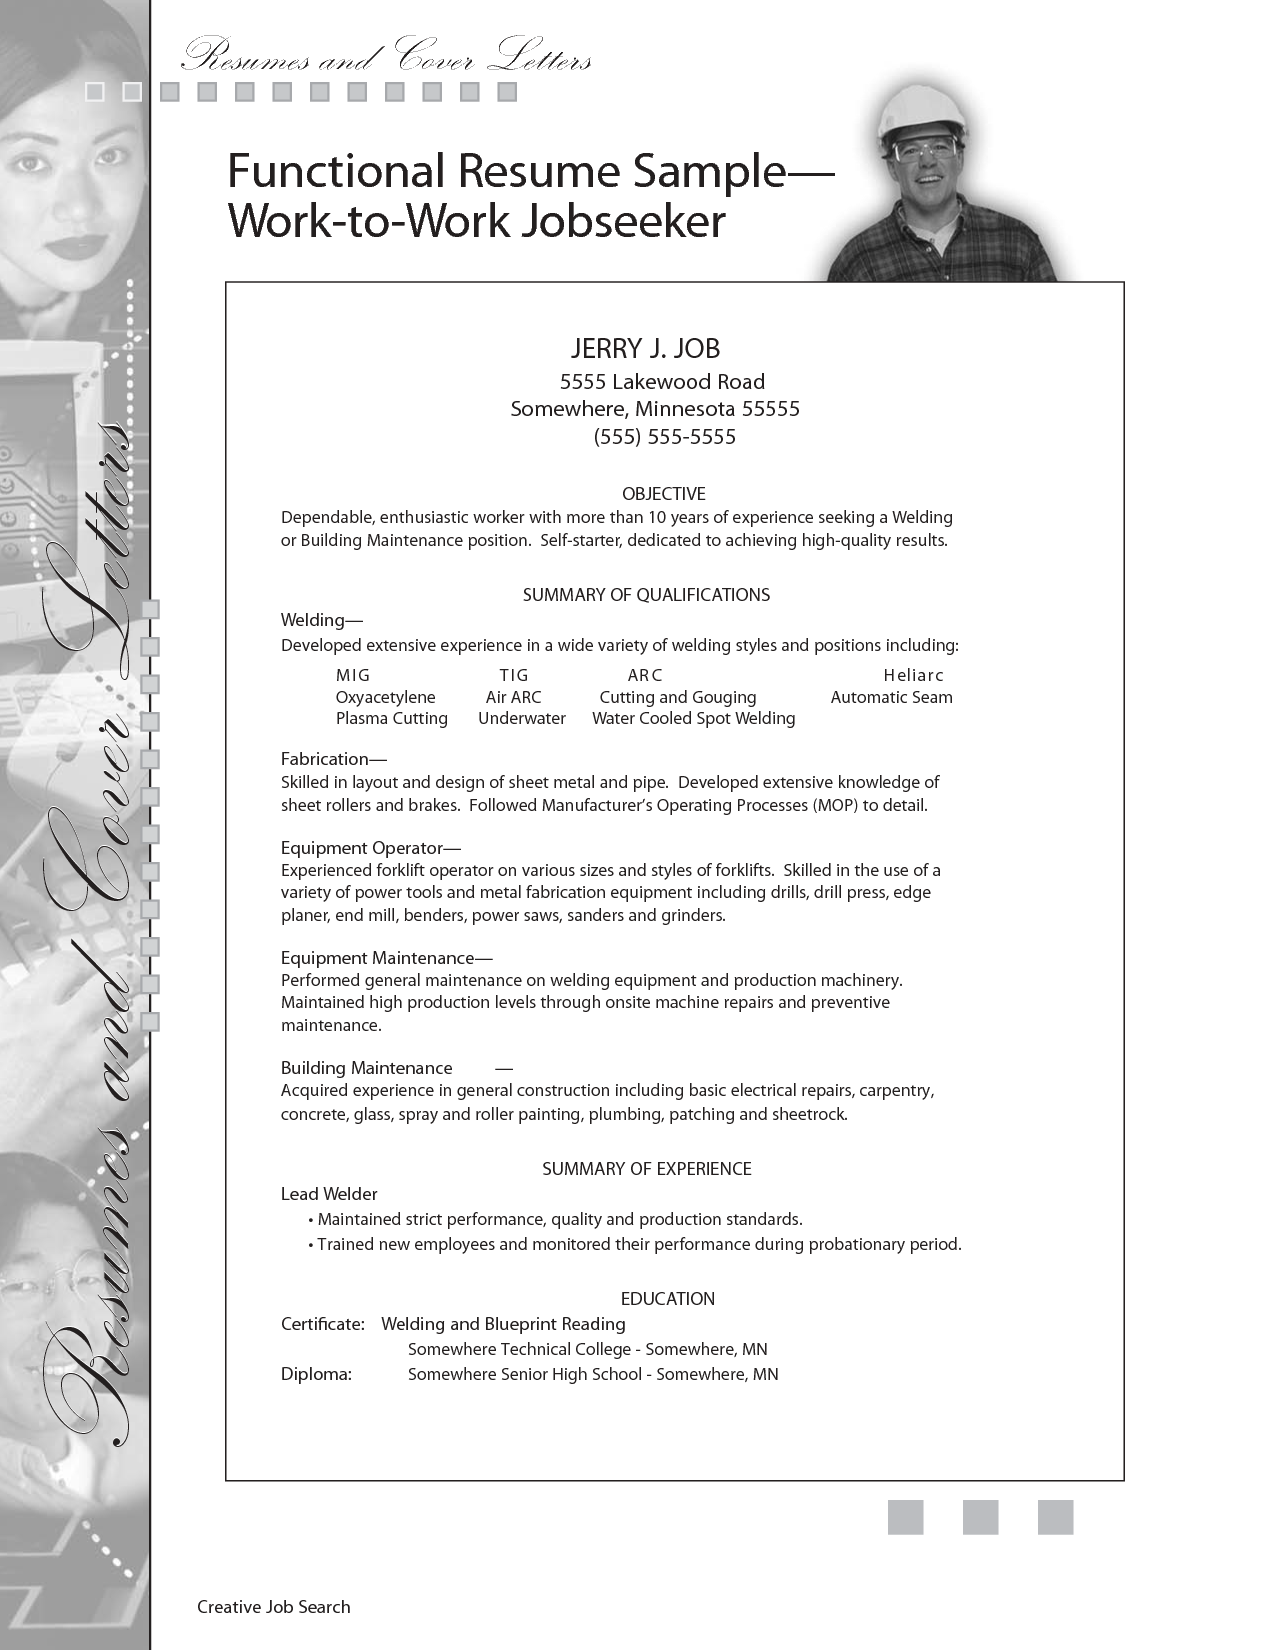 Resume For Welder Job Sample Resume For Welding Position Sample Building